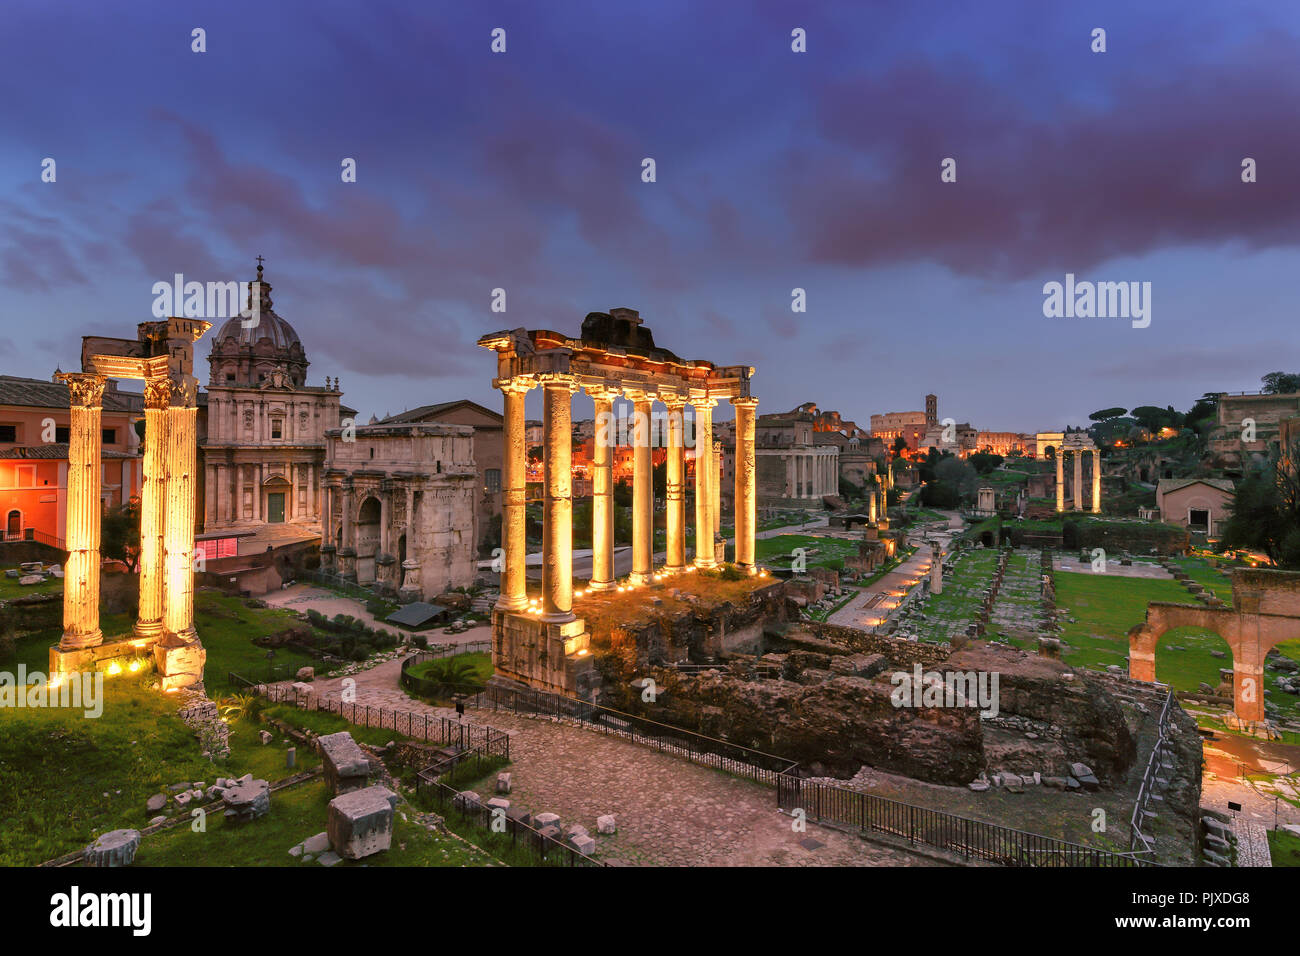 Ruins of Roman's forum at night in Rome, Italy. - Stock Image